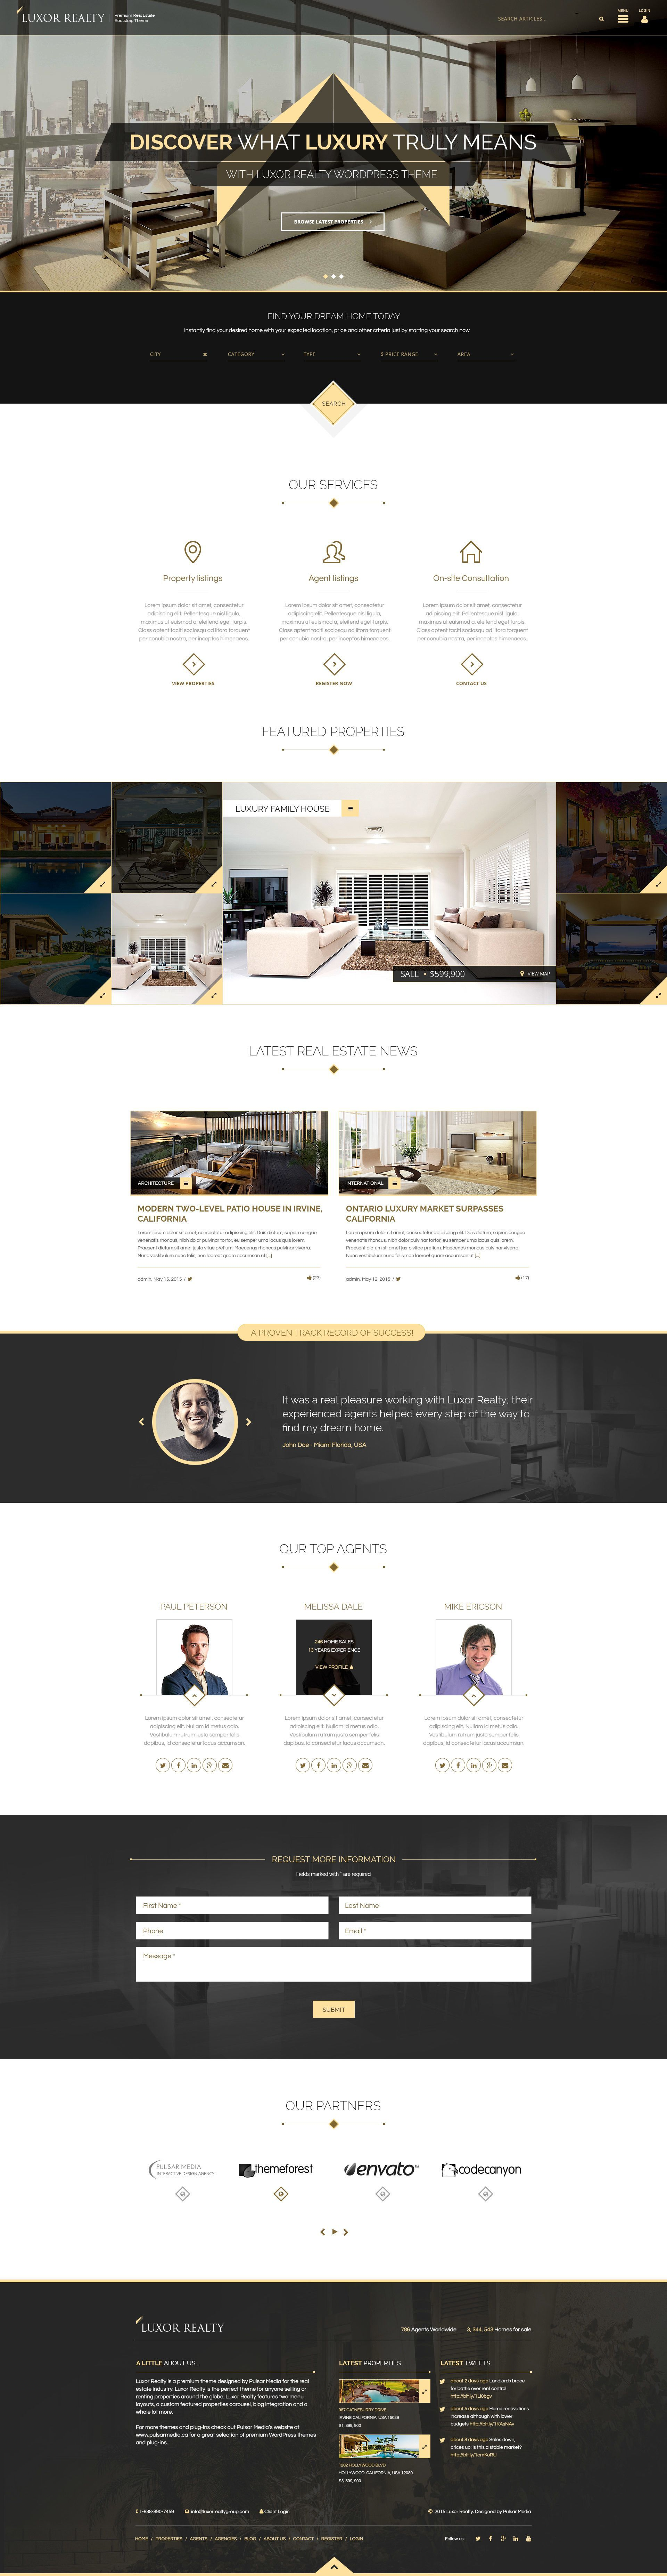 Luxor Is A Premium Real Estate Wordpress Theme Designed For The Real